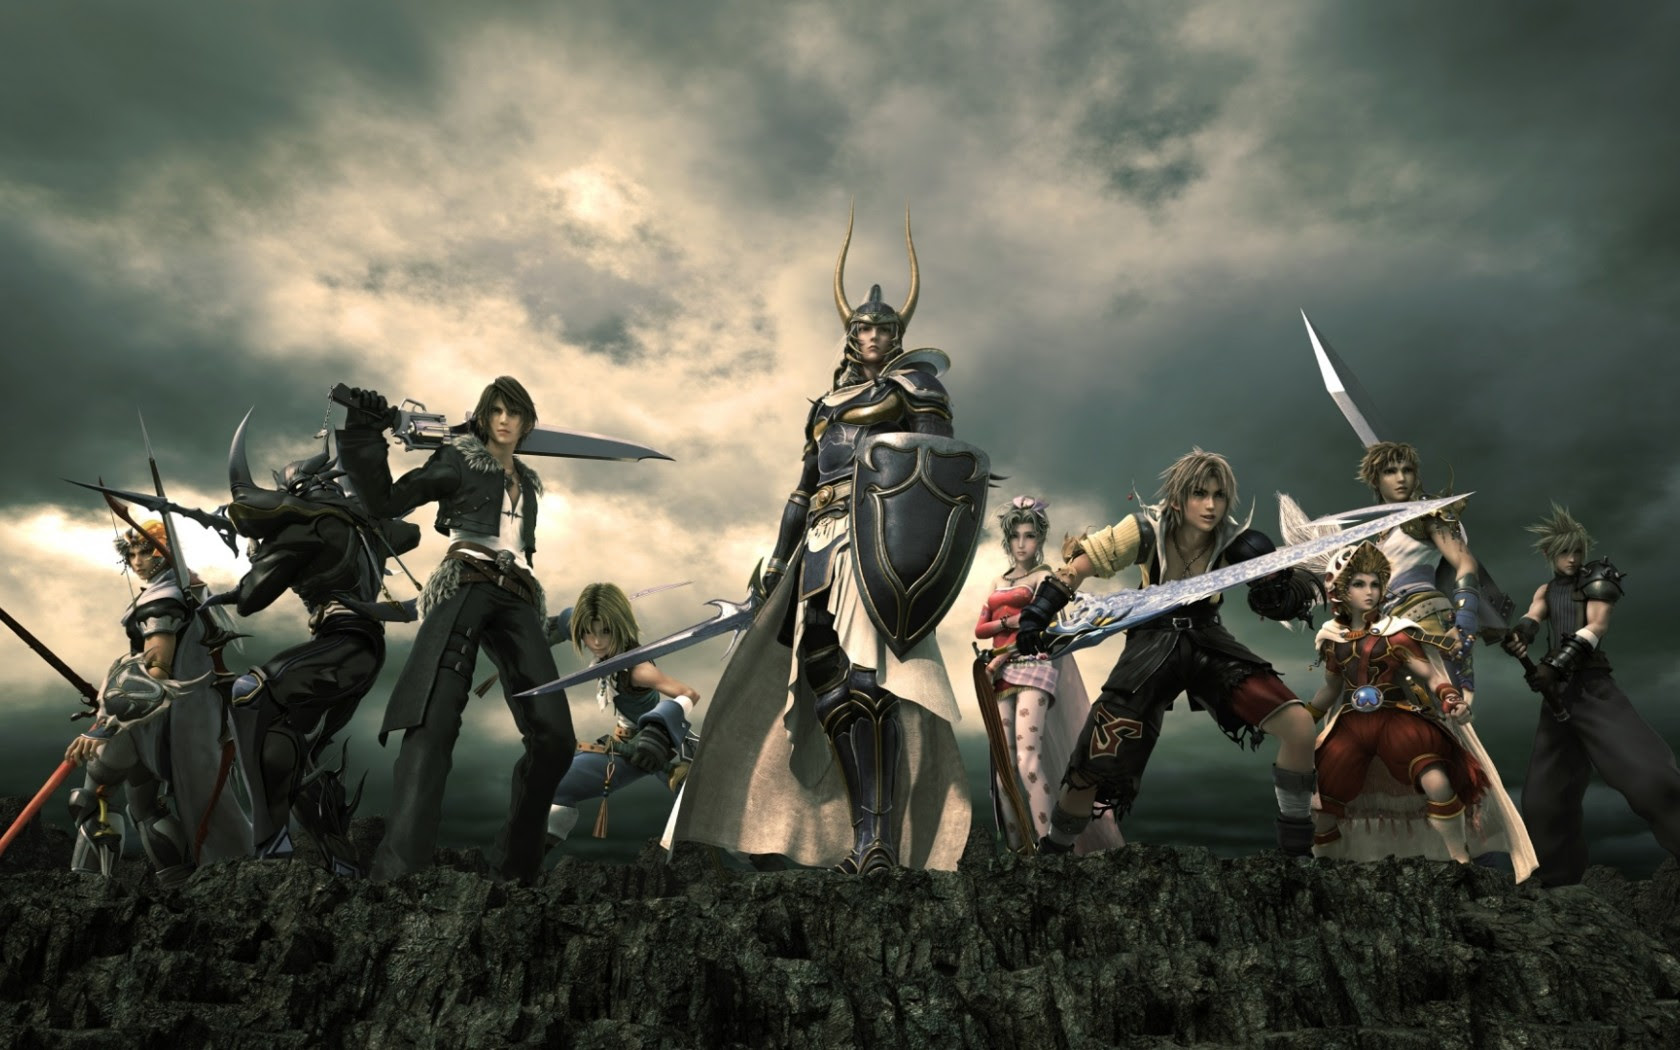 Final Fantasy Xiv Characters Wallpaper For Desktop And Mobiles